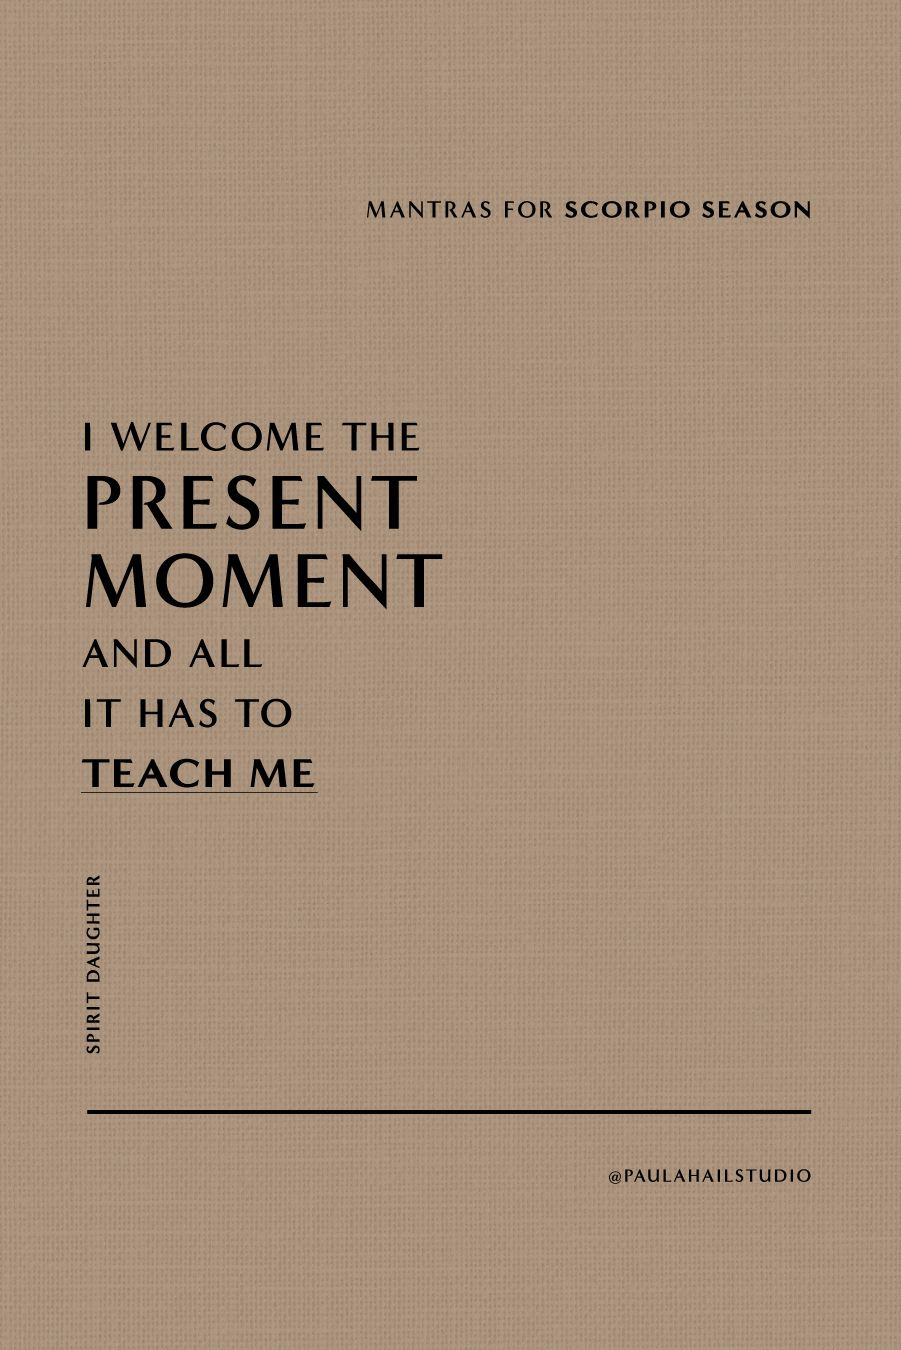 I welcome present moment and all it has to teach me - Paula Hail Studio - Mantras for Scorpio Season